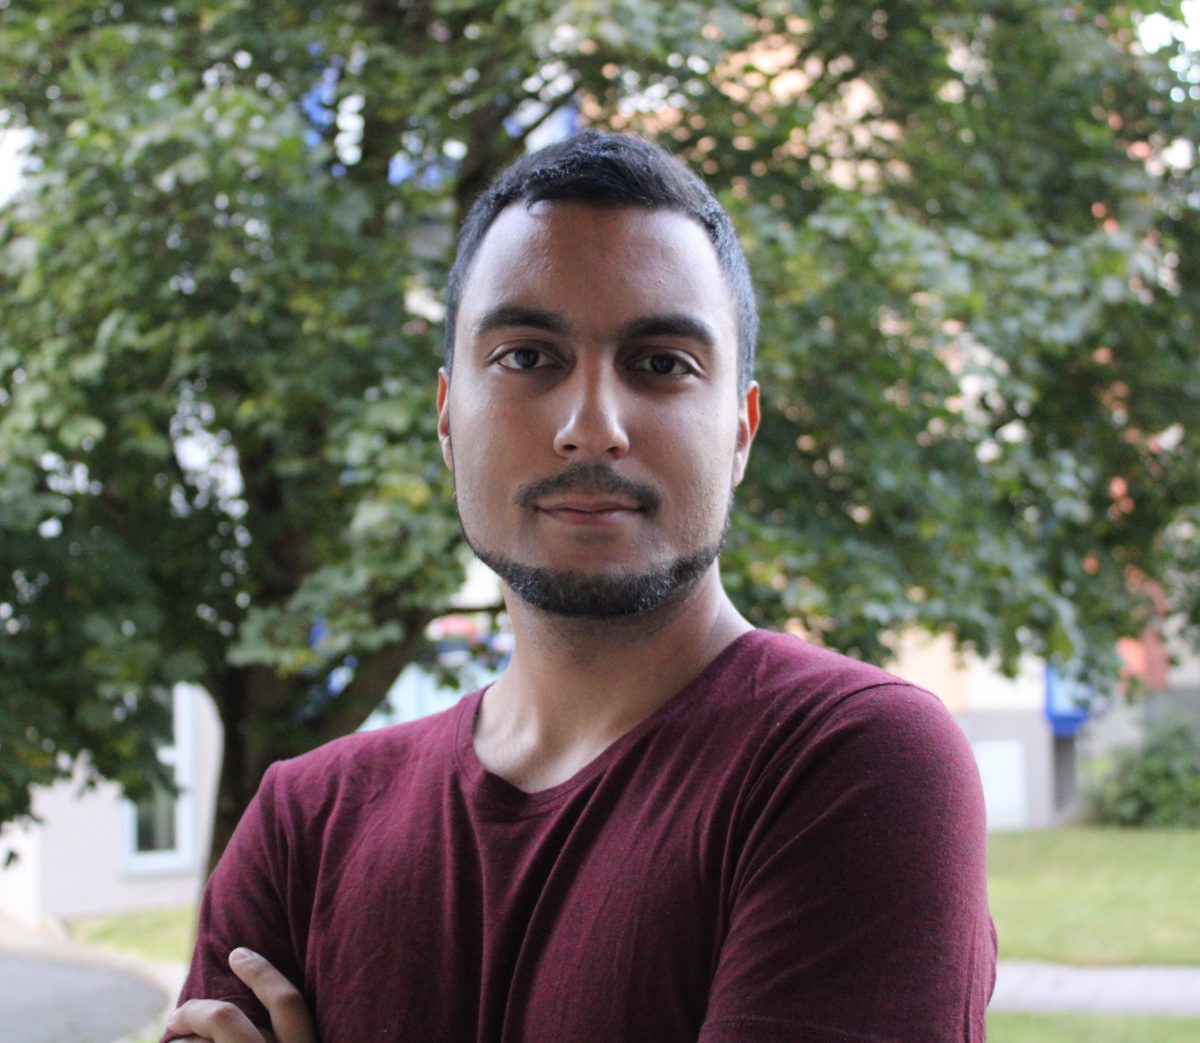 Welcome Isaac Alvarez as ESR 7 working at the Catholic University of Louvain!